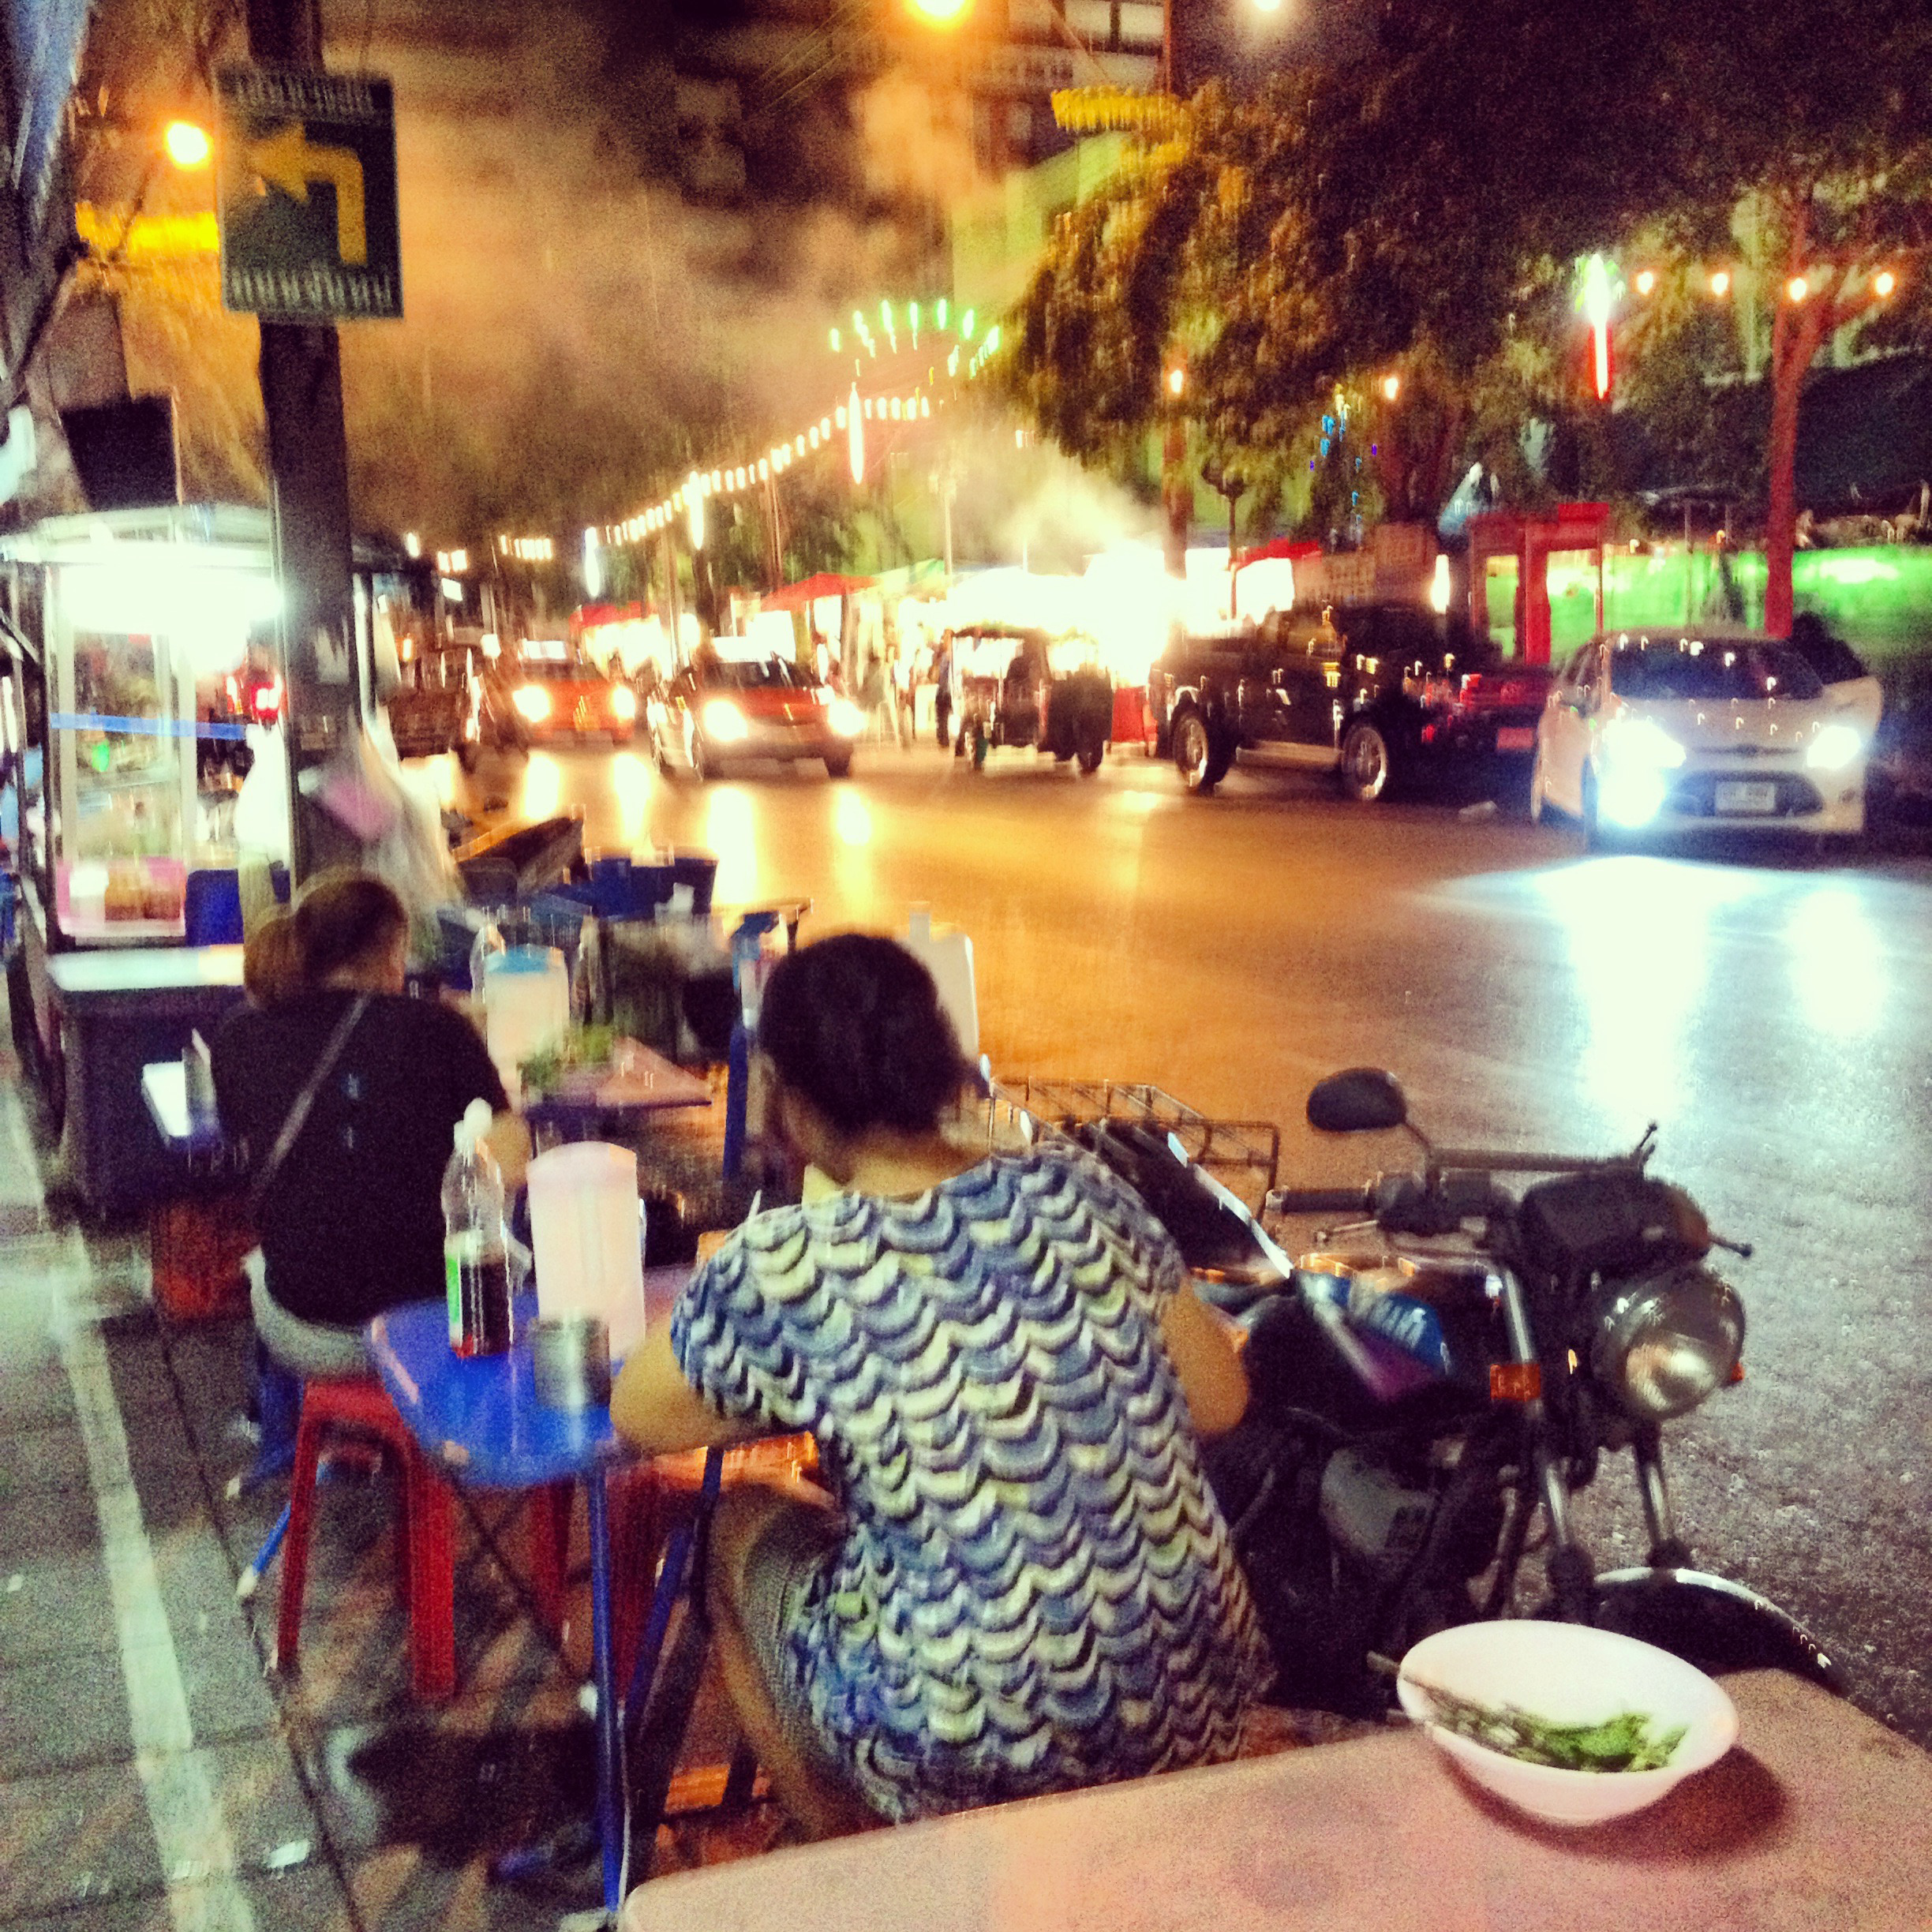 People eating at tables outside on a street in Bangkok.